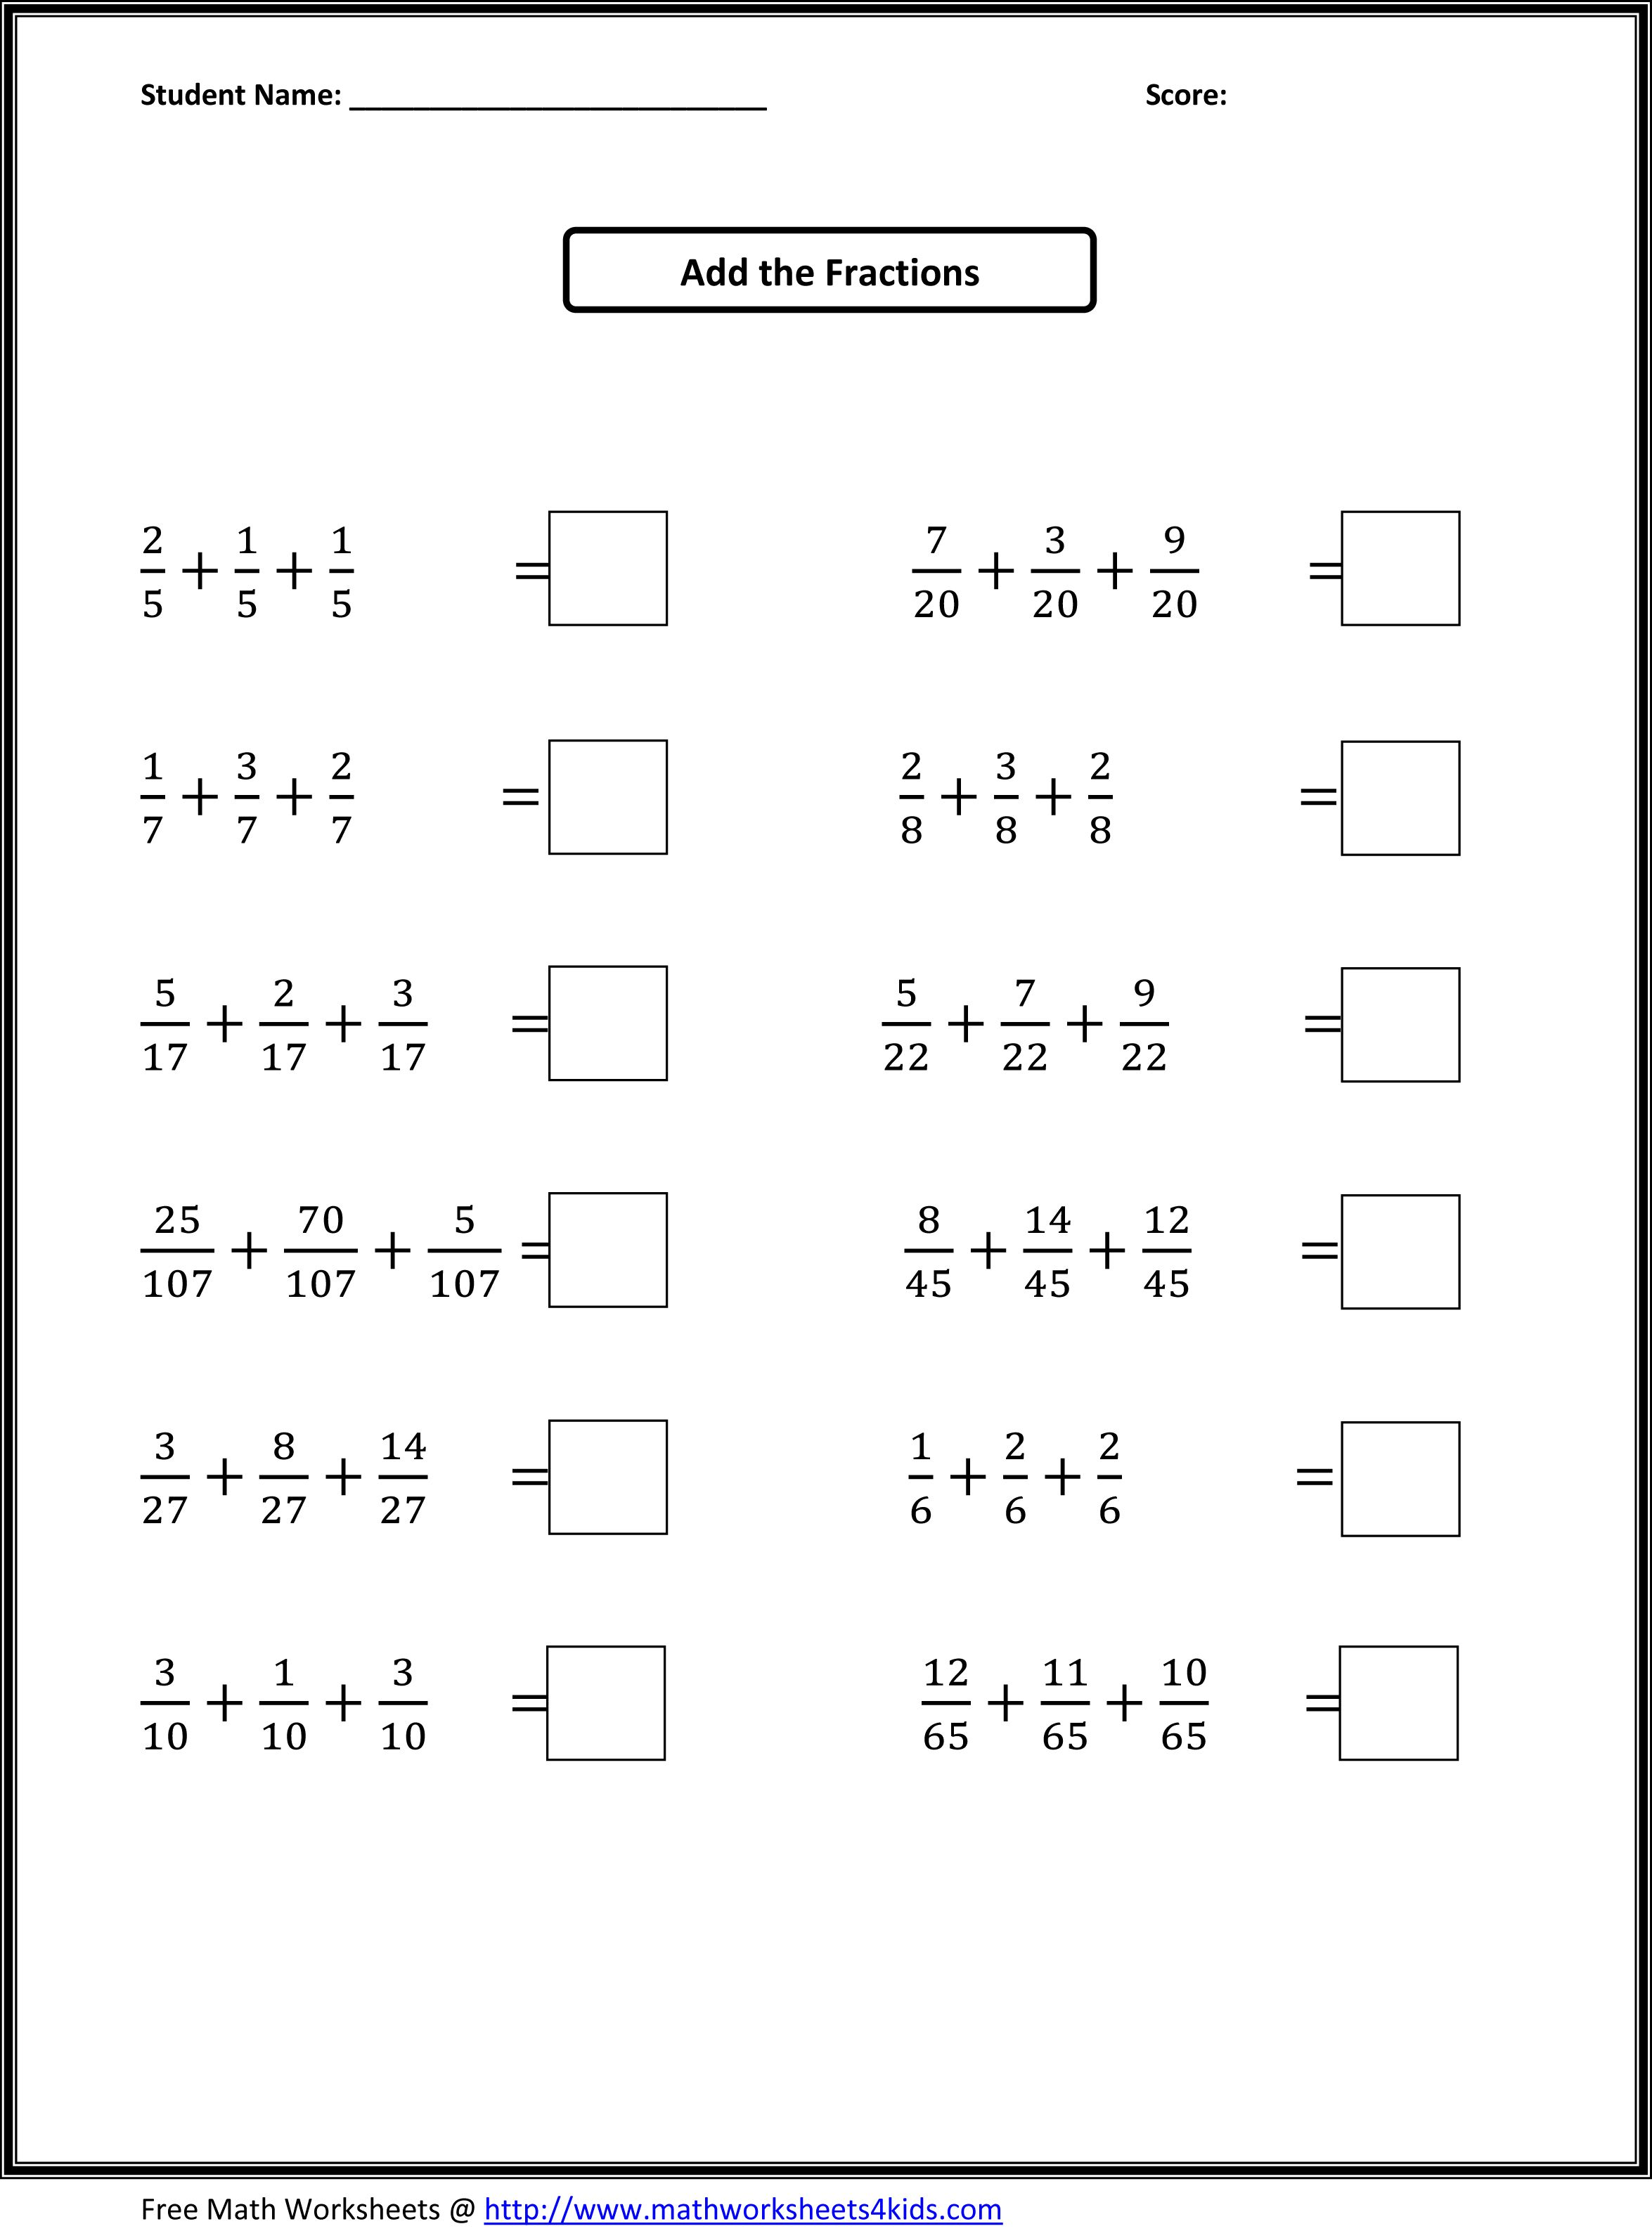 Printables Math For Fourth Grade Worksheets 1000 images about math worksheets on pinterest 4th grade geometry and fourth math